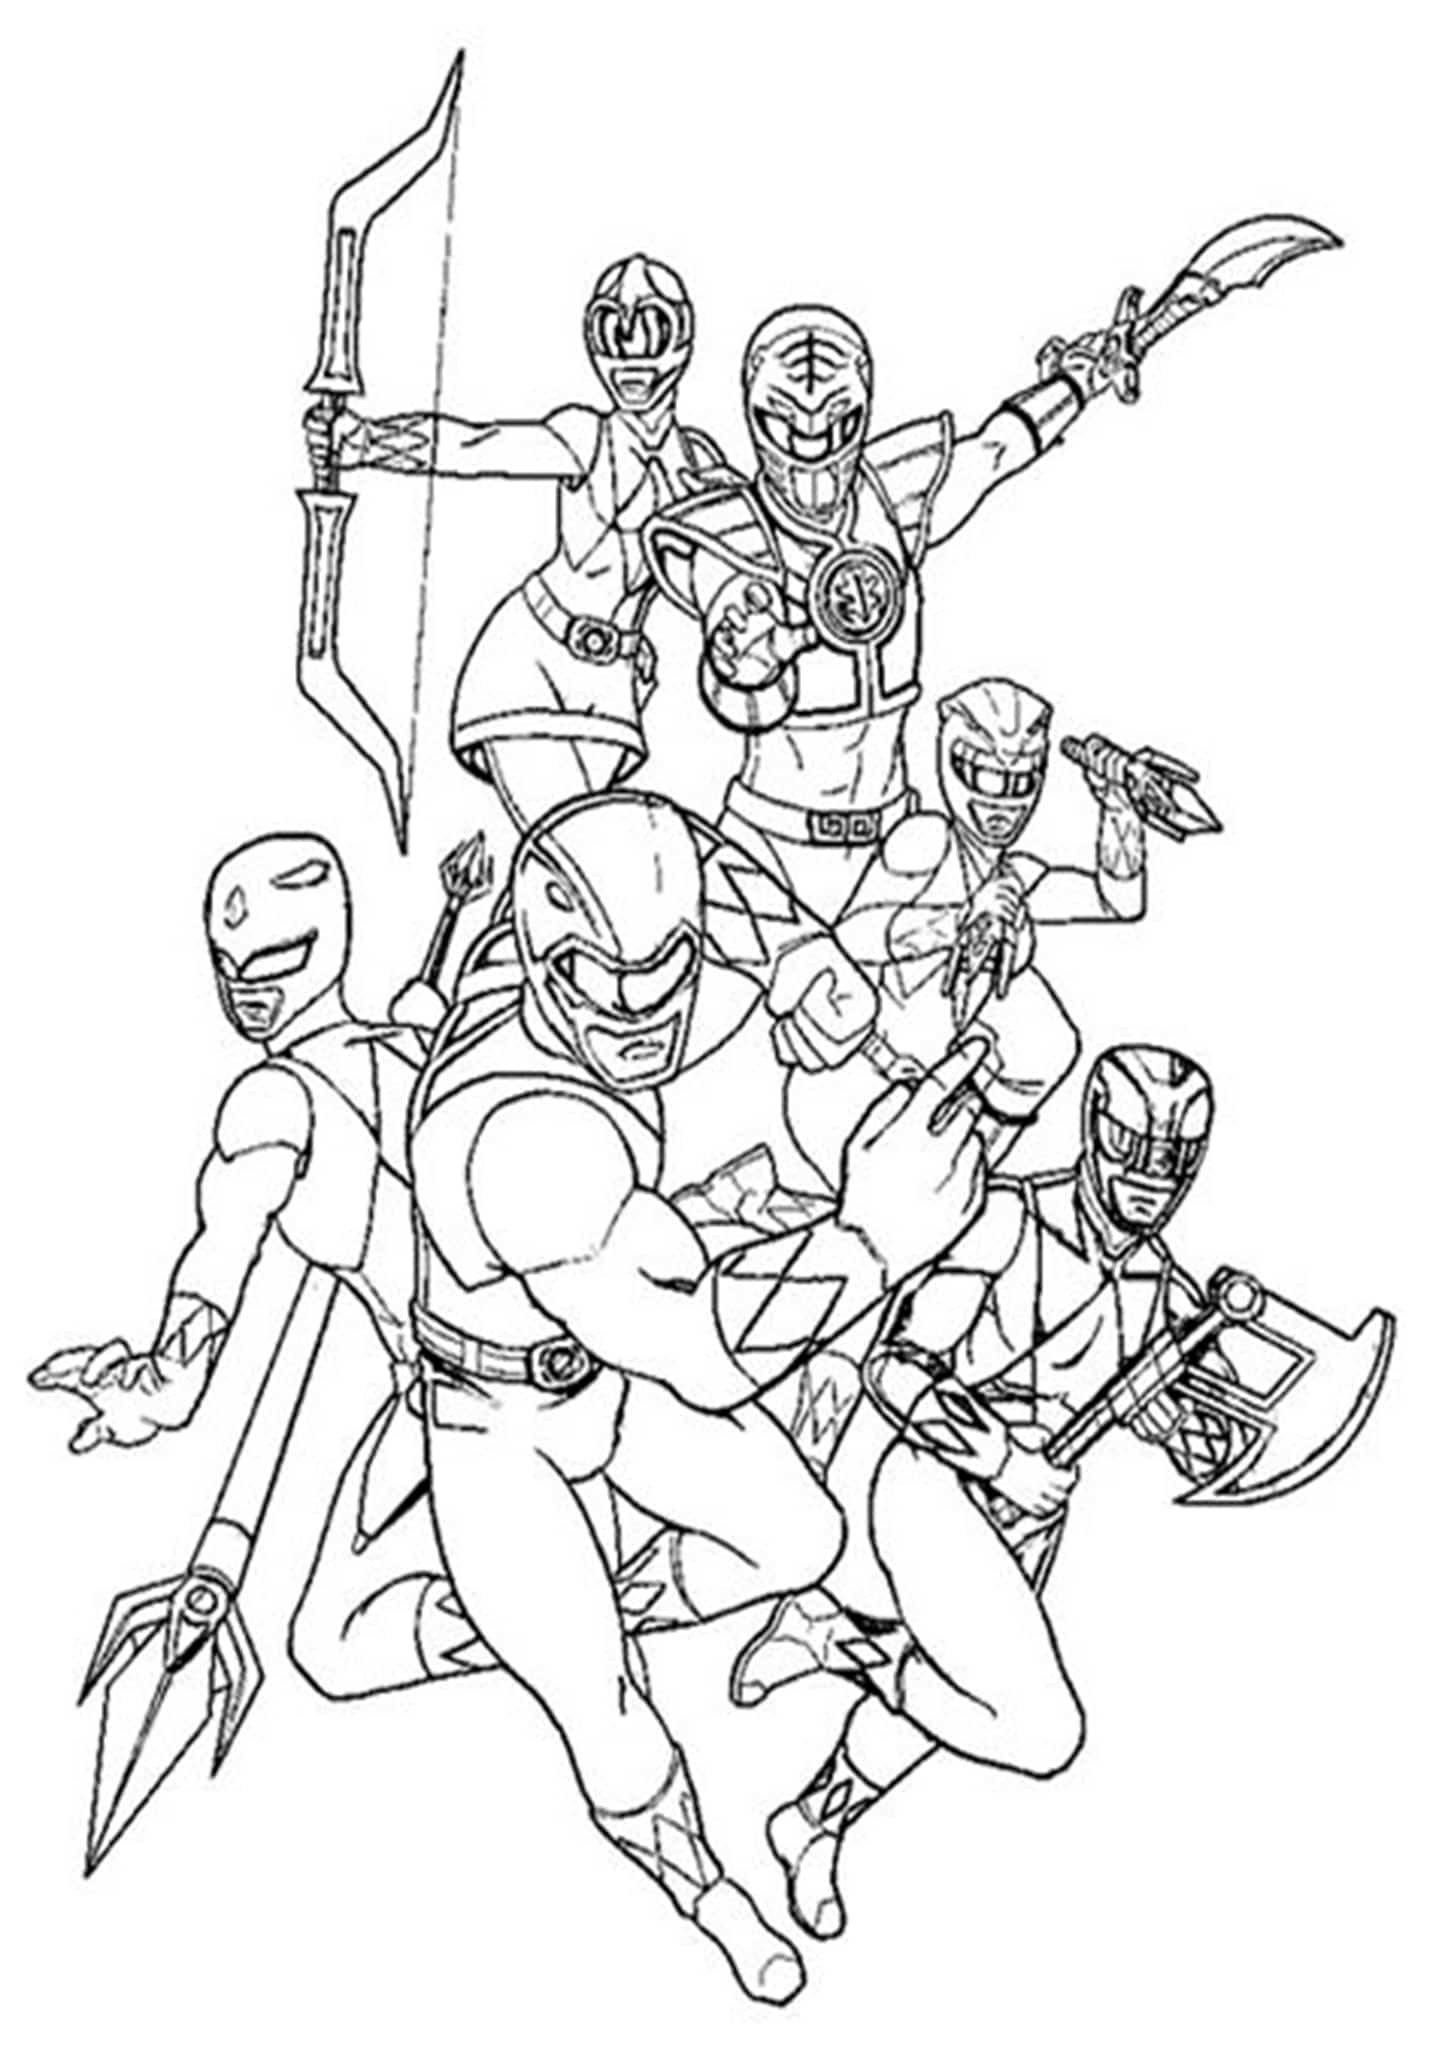 power rangers printable coloring pages power rangers super megaforce coloring pages pages printable coloring rangers power